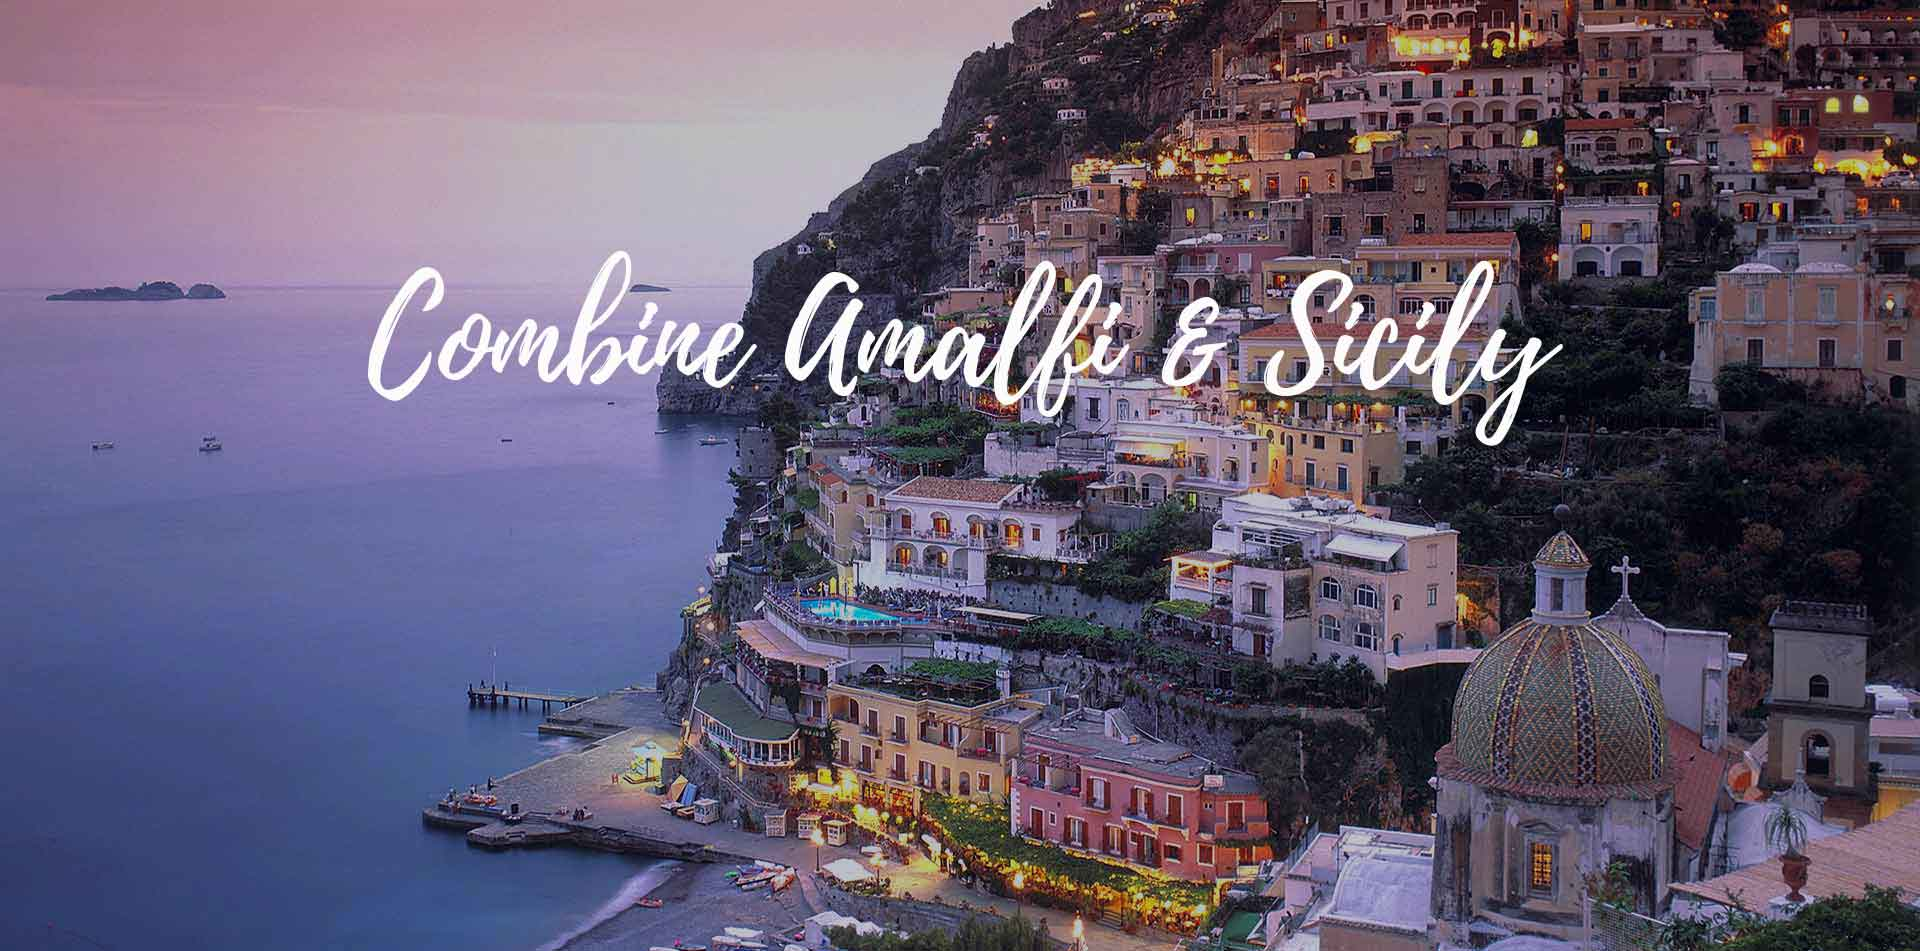 Europe Italy Combine Amalfi and Sicily Positano beautiful romantic cliffside at dusk sunset - luxury vacation destinations